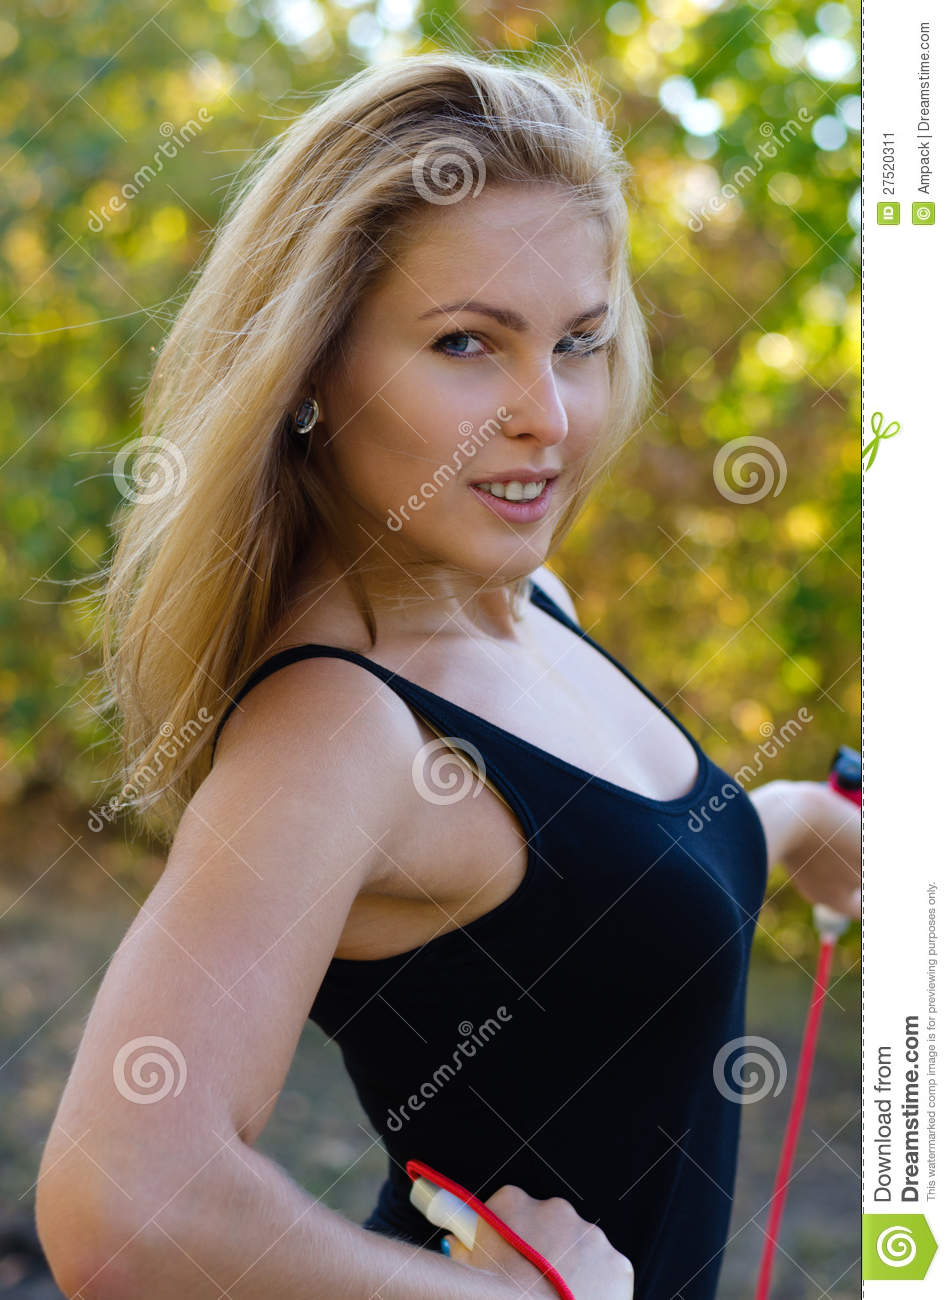 Healthy Active Blonde Woman Stock Image - Image: 27520311